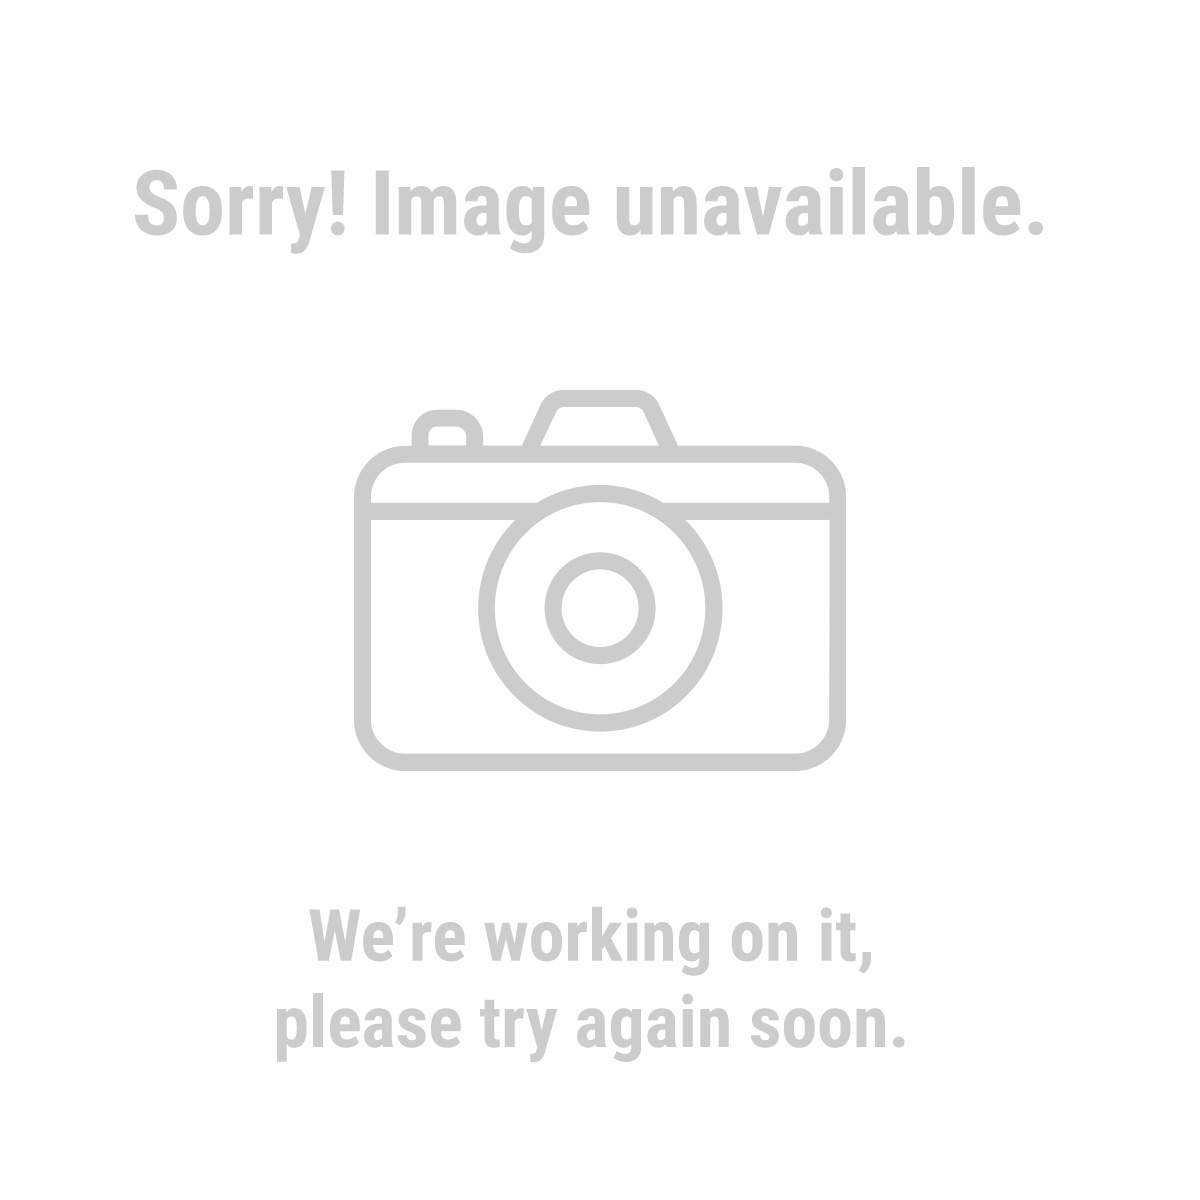 "Warrior 39677 4-1/2"" Grinding Wheel for Metal"